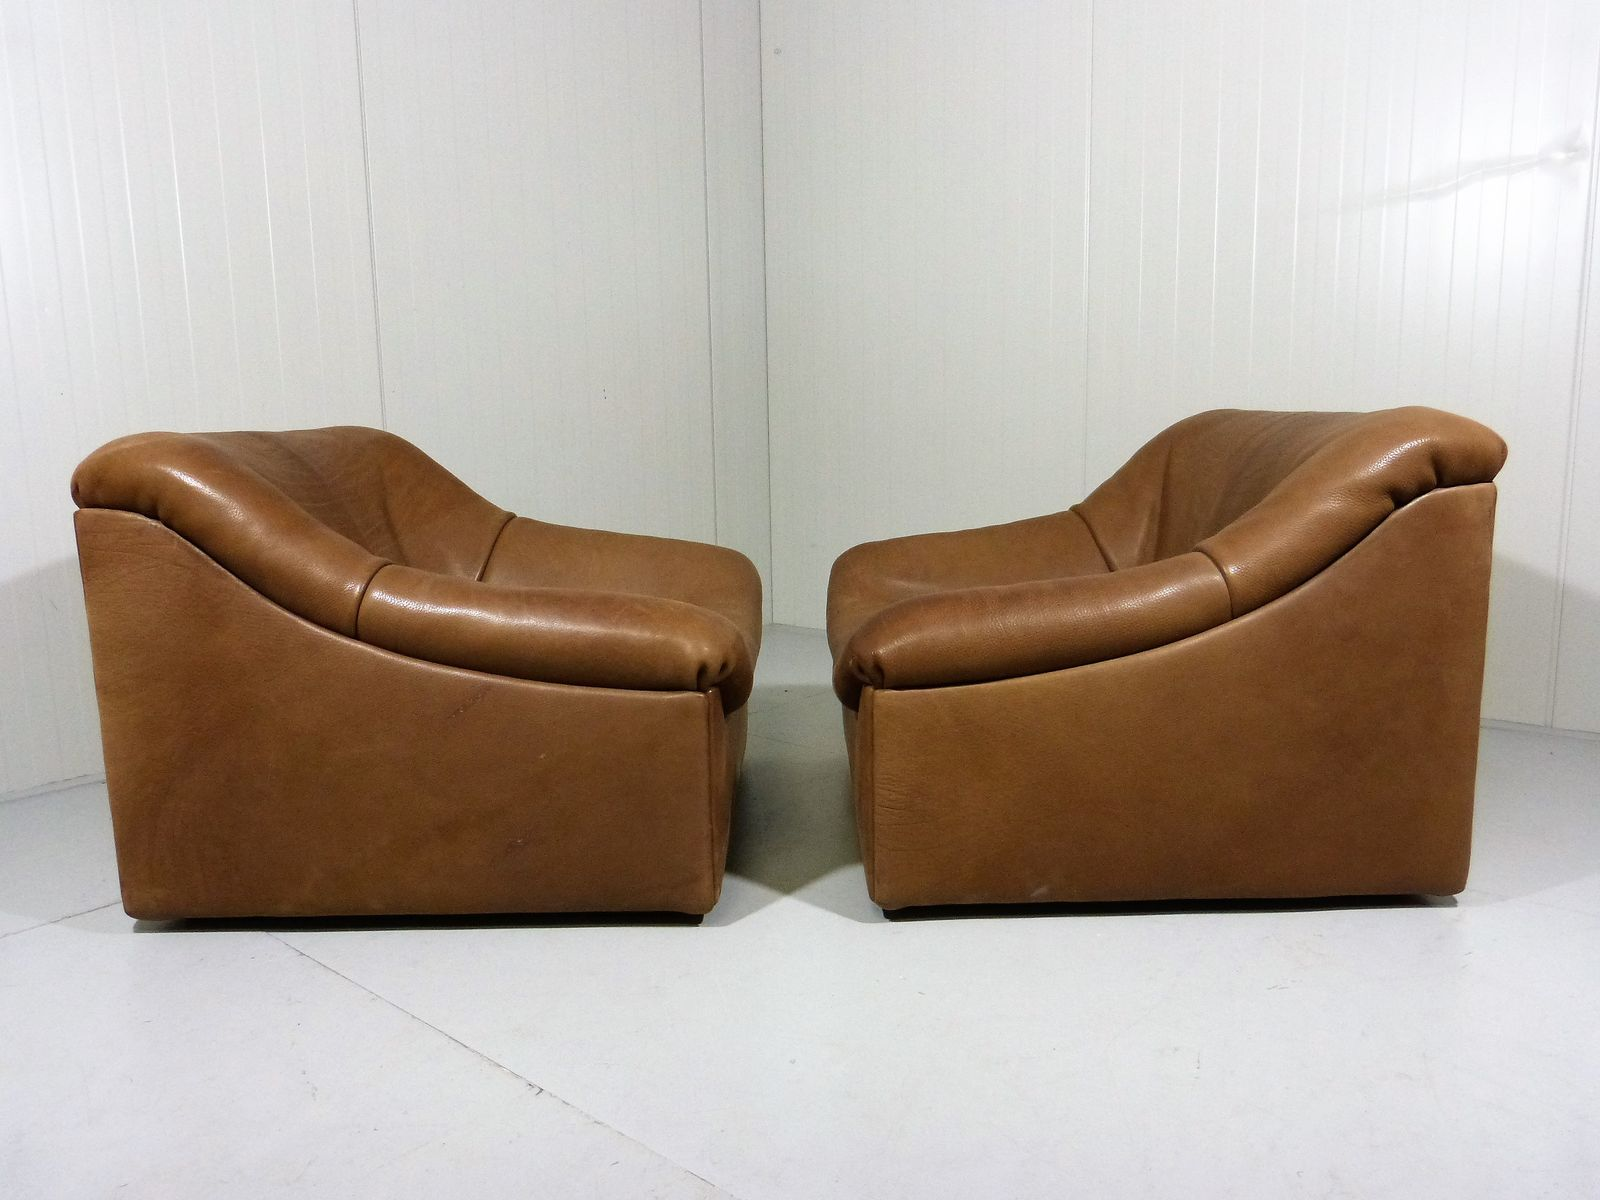 Ds 46 Thick Buffalo Leather Lounge Chairs From De Sede Set Of 2 For Sale At Pamono